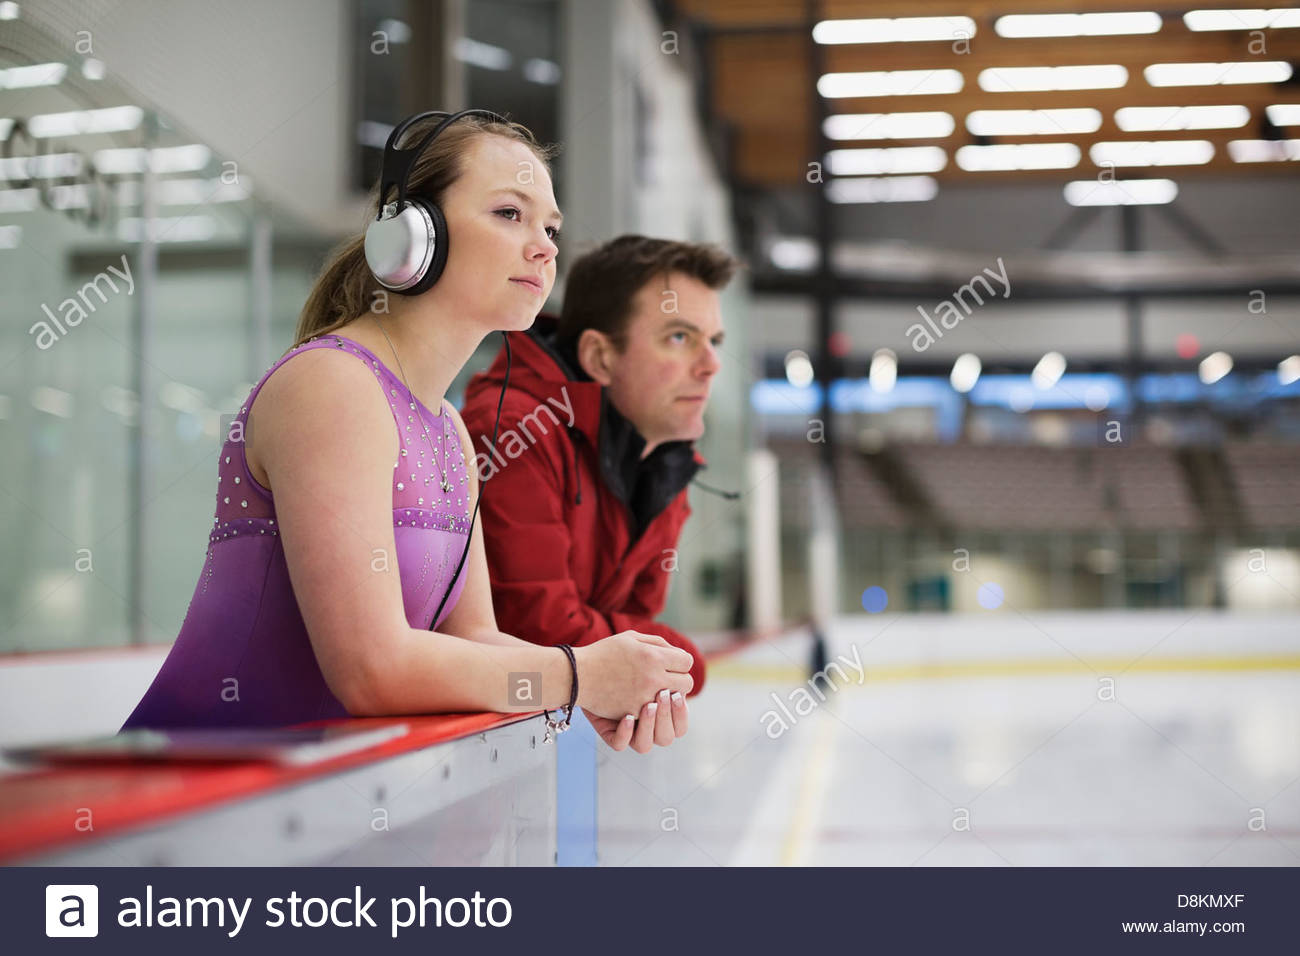 Female figure skater with coach preparing for routine in skating rink - Stock Image